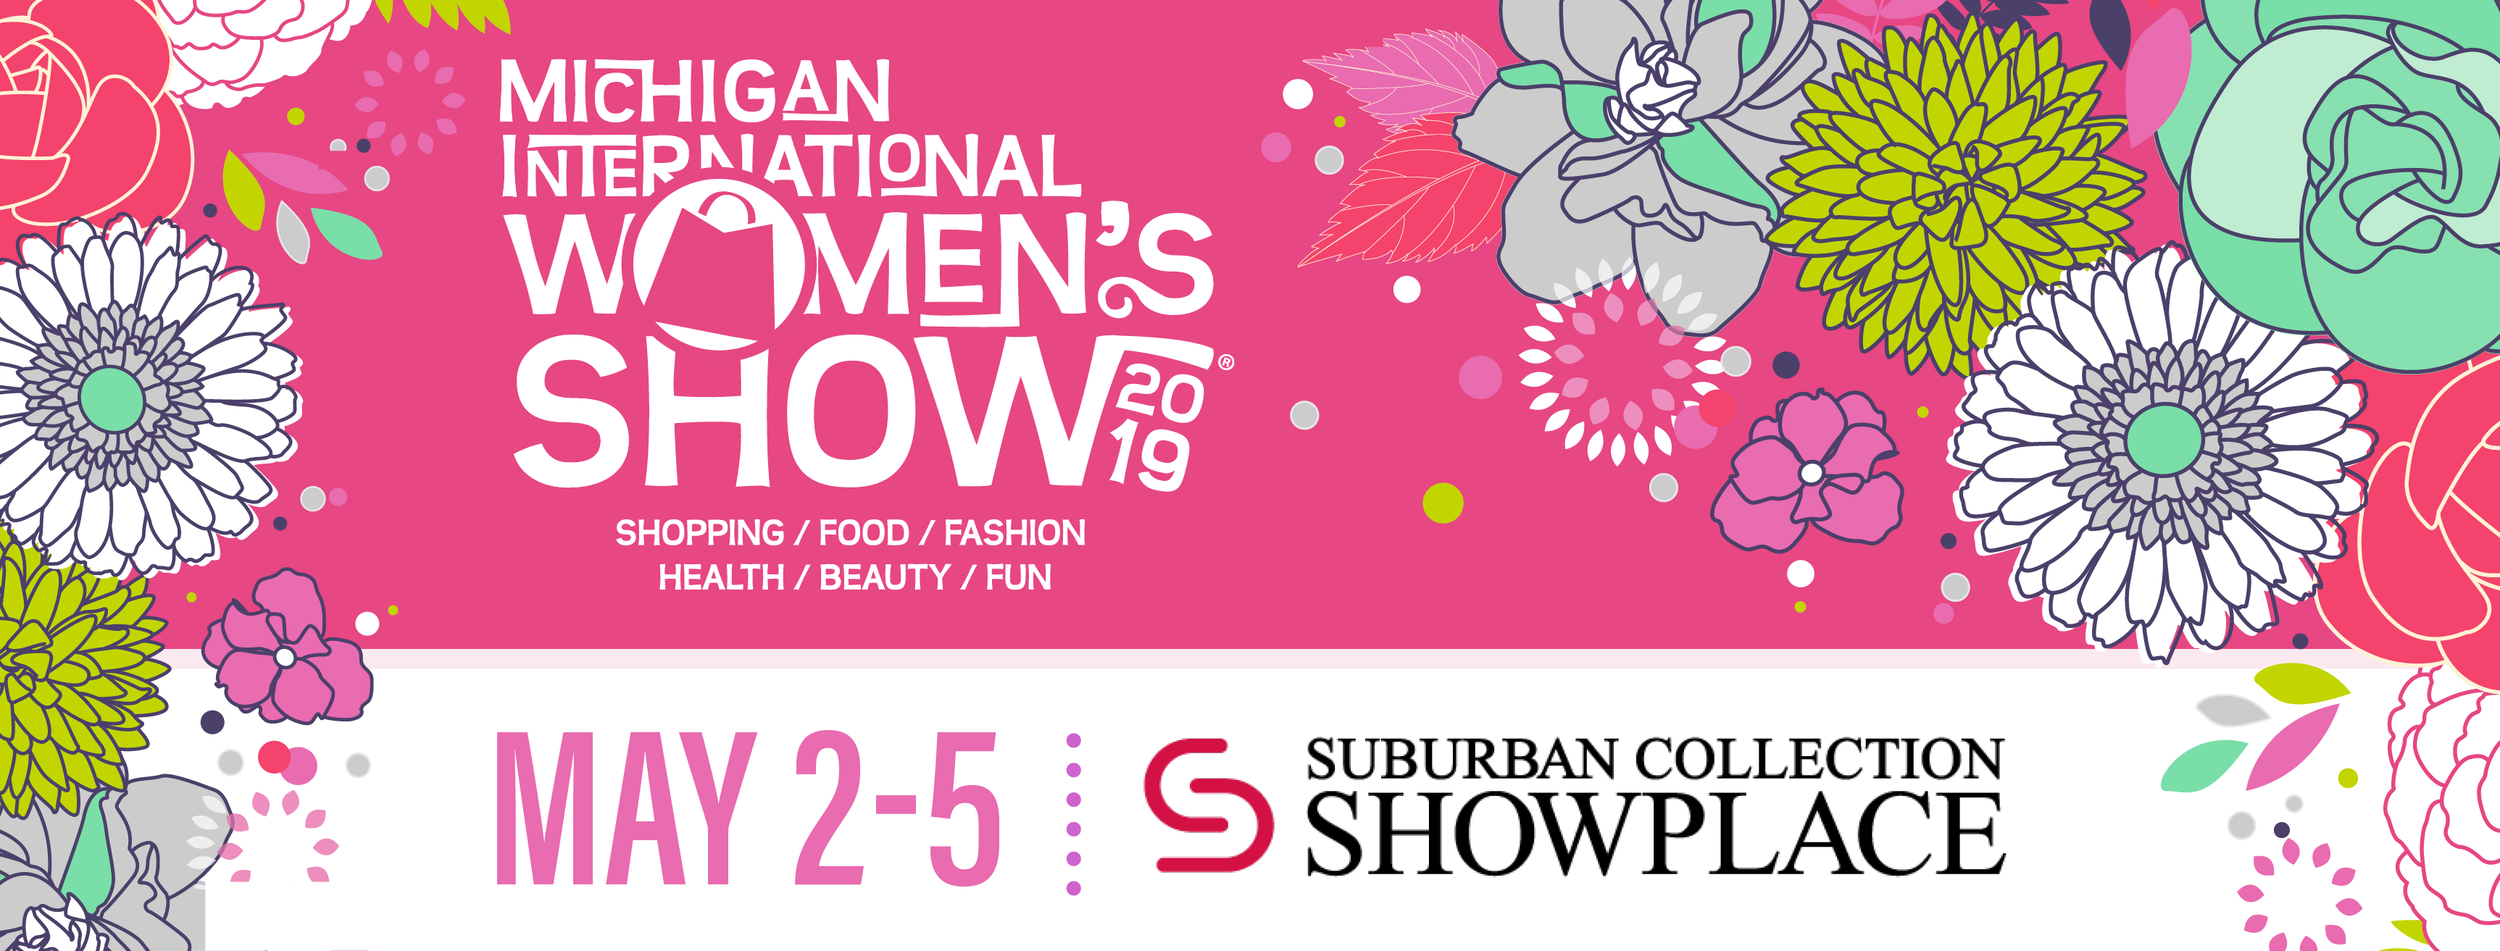 Visit my  PAGE  at the Michigan International Women's Show 2019!